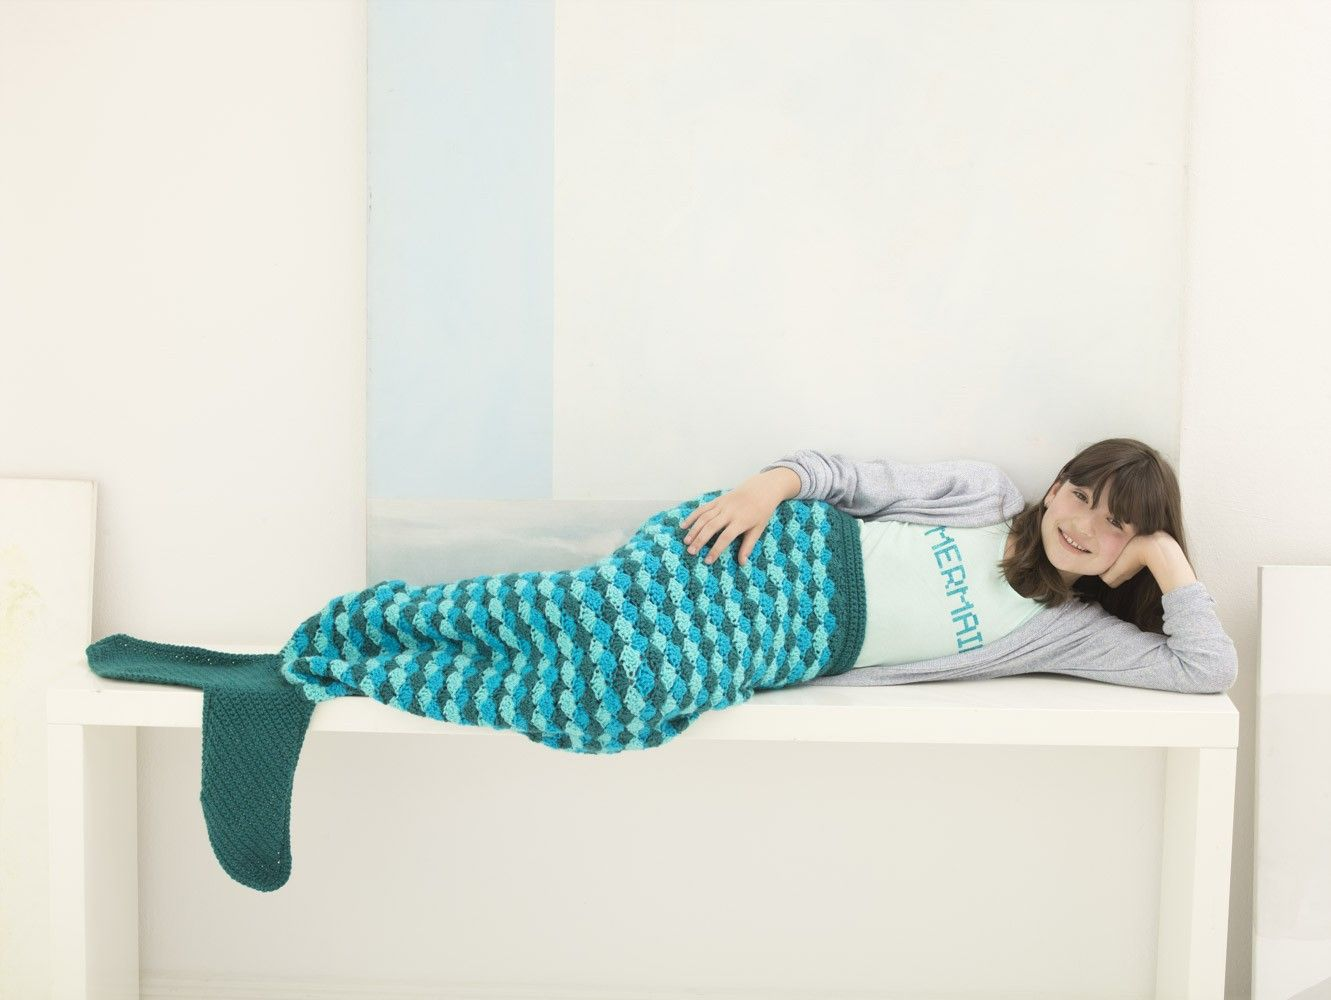 Mermaid Tail Cocoon (Crochet) | Crochet for Baby and Children ...